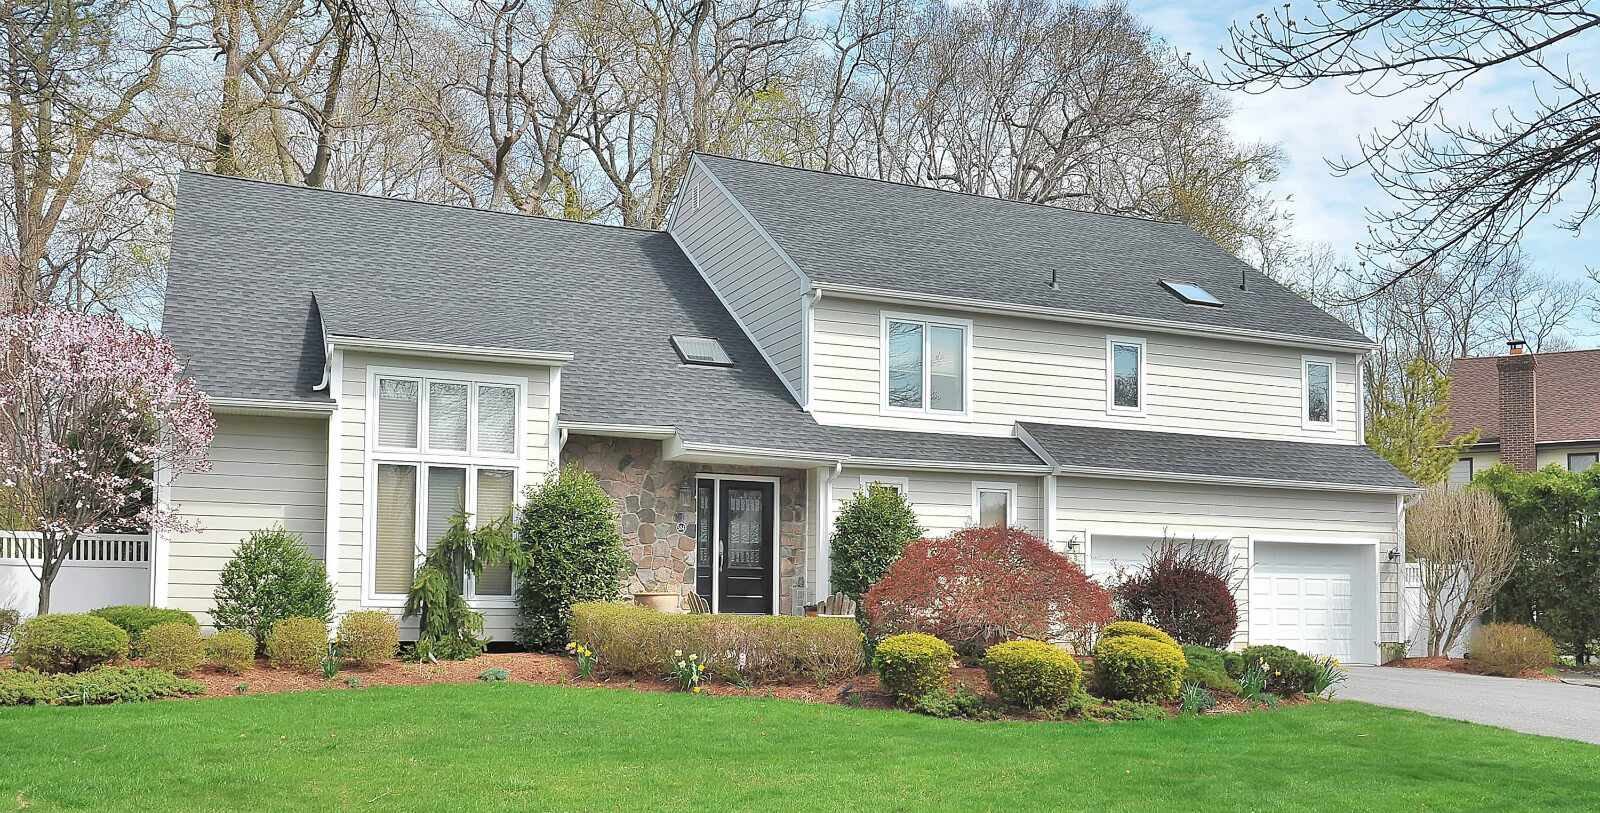 Farmhouse Cresskill Homes Condos And Executive Housing Bergen County